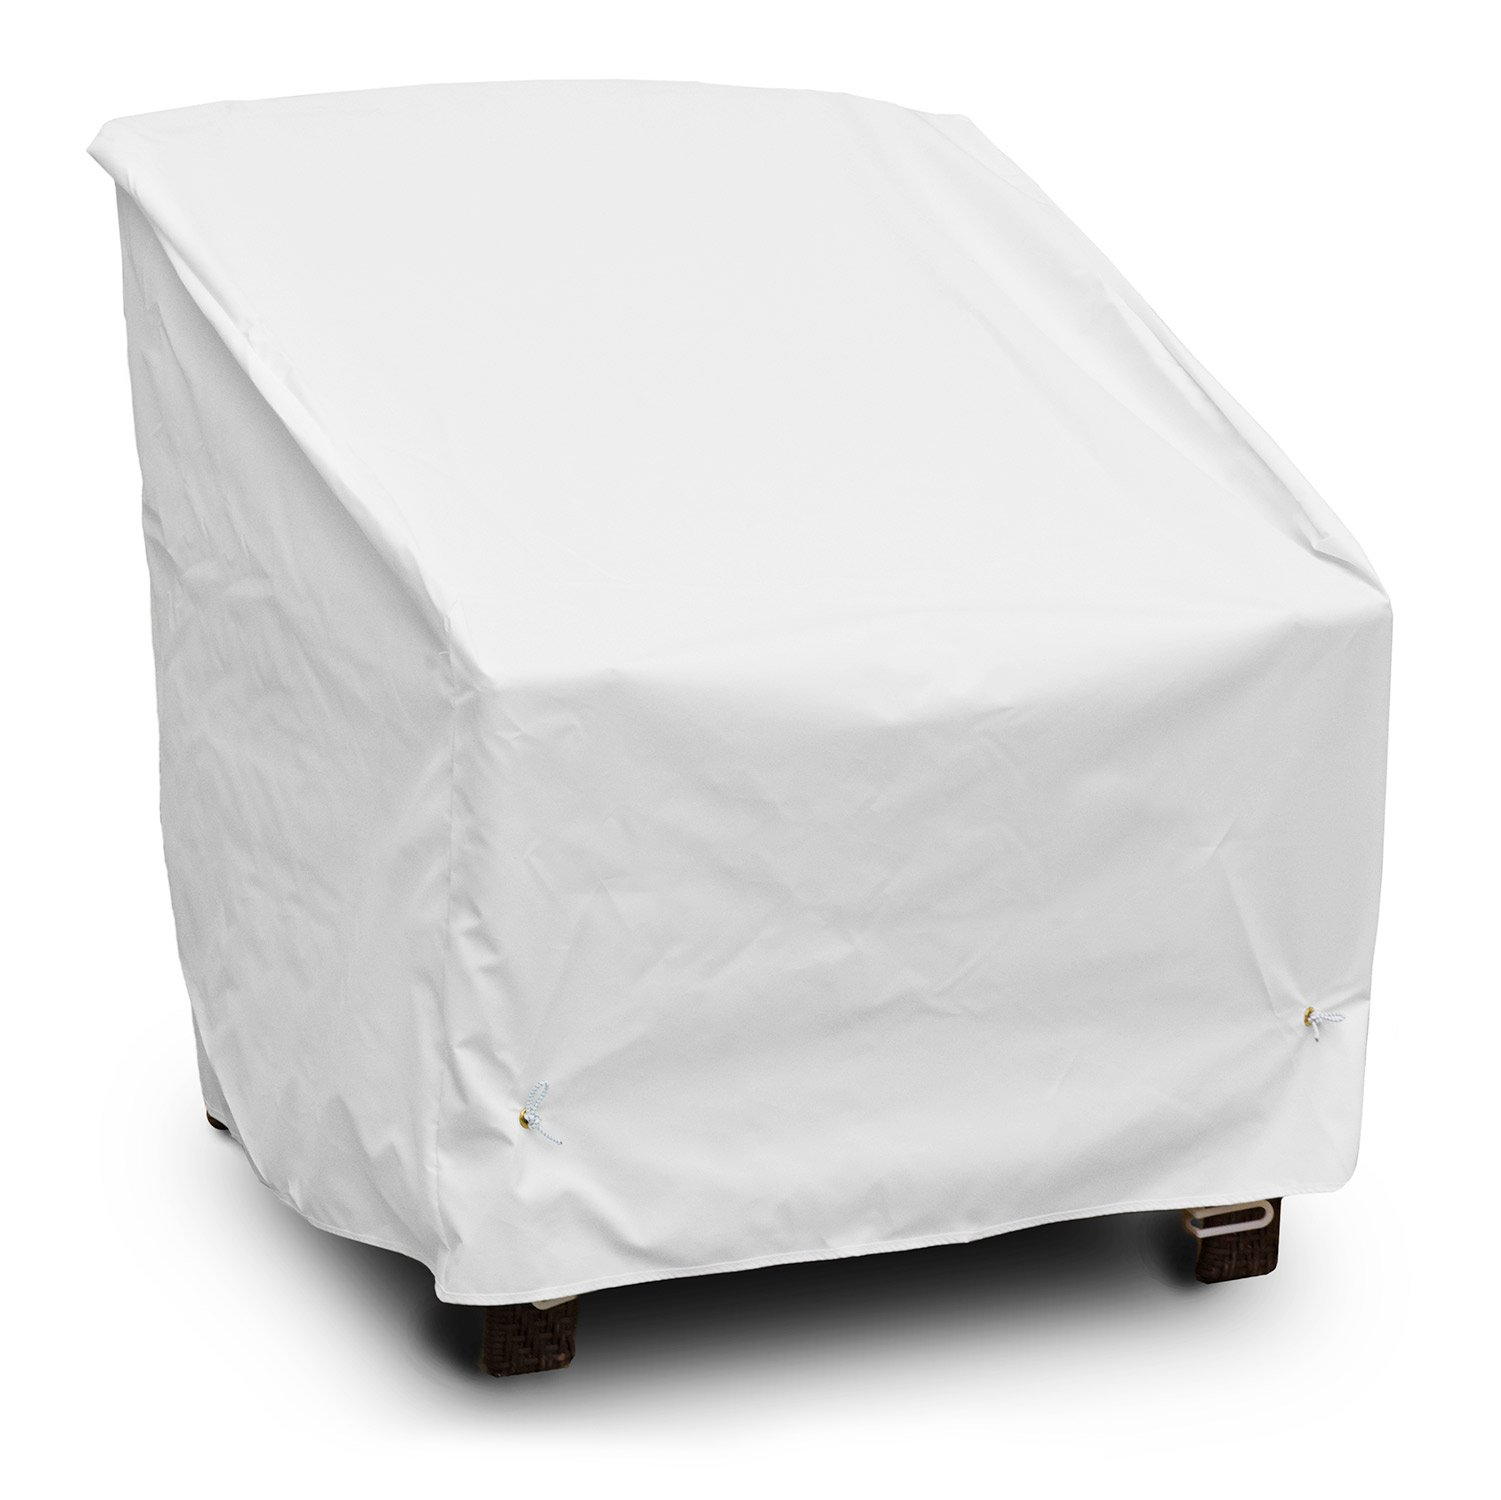 KoverRoos Weathermax 19522 Deep Seating High-Back Lounge Chair Cover, 39-Inch Width by 33-Inch Diameter by 38-Inch Height, White